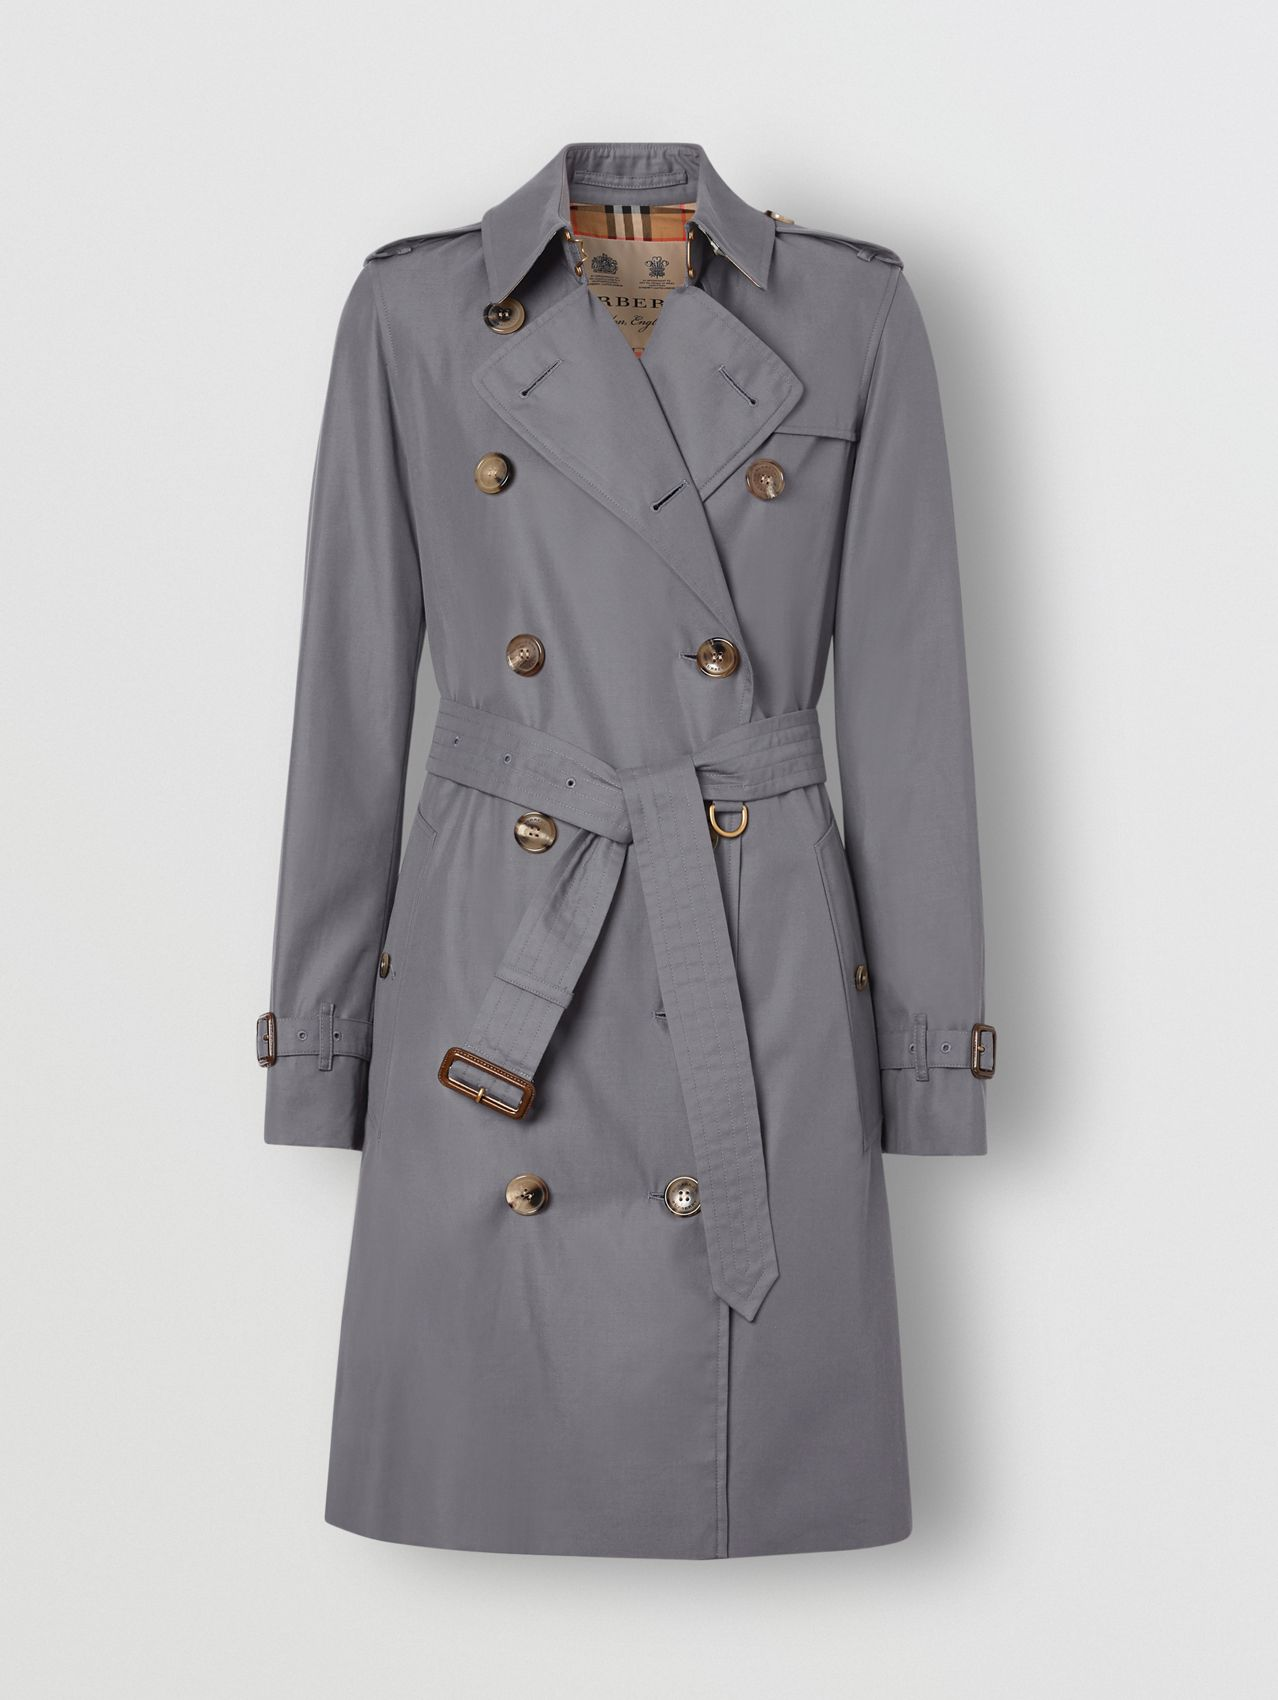 The Mid-length Kensington Heritage Trench Coat in Mid-grey